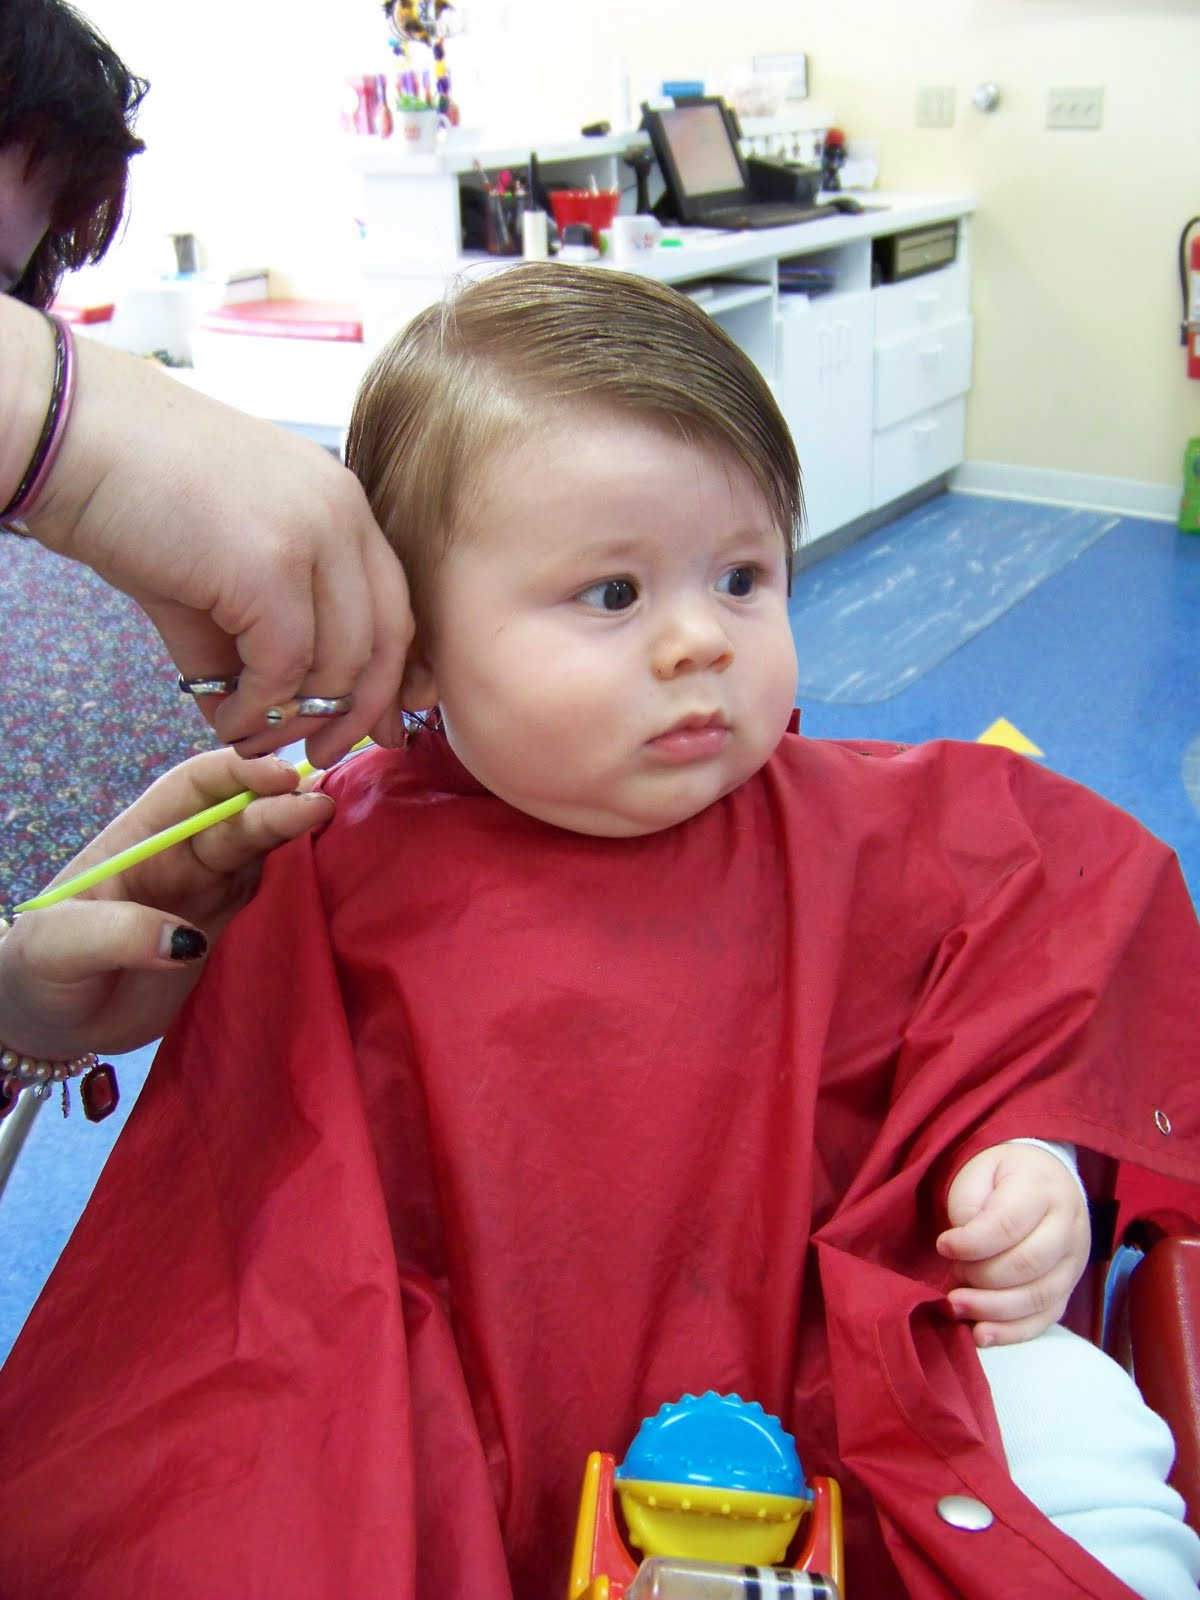 48+ top style haircut style for 1 year old boy